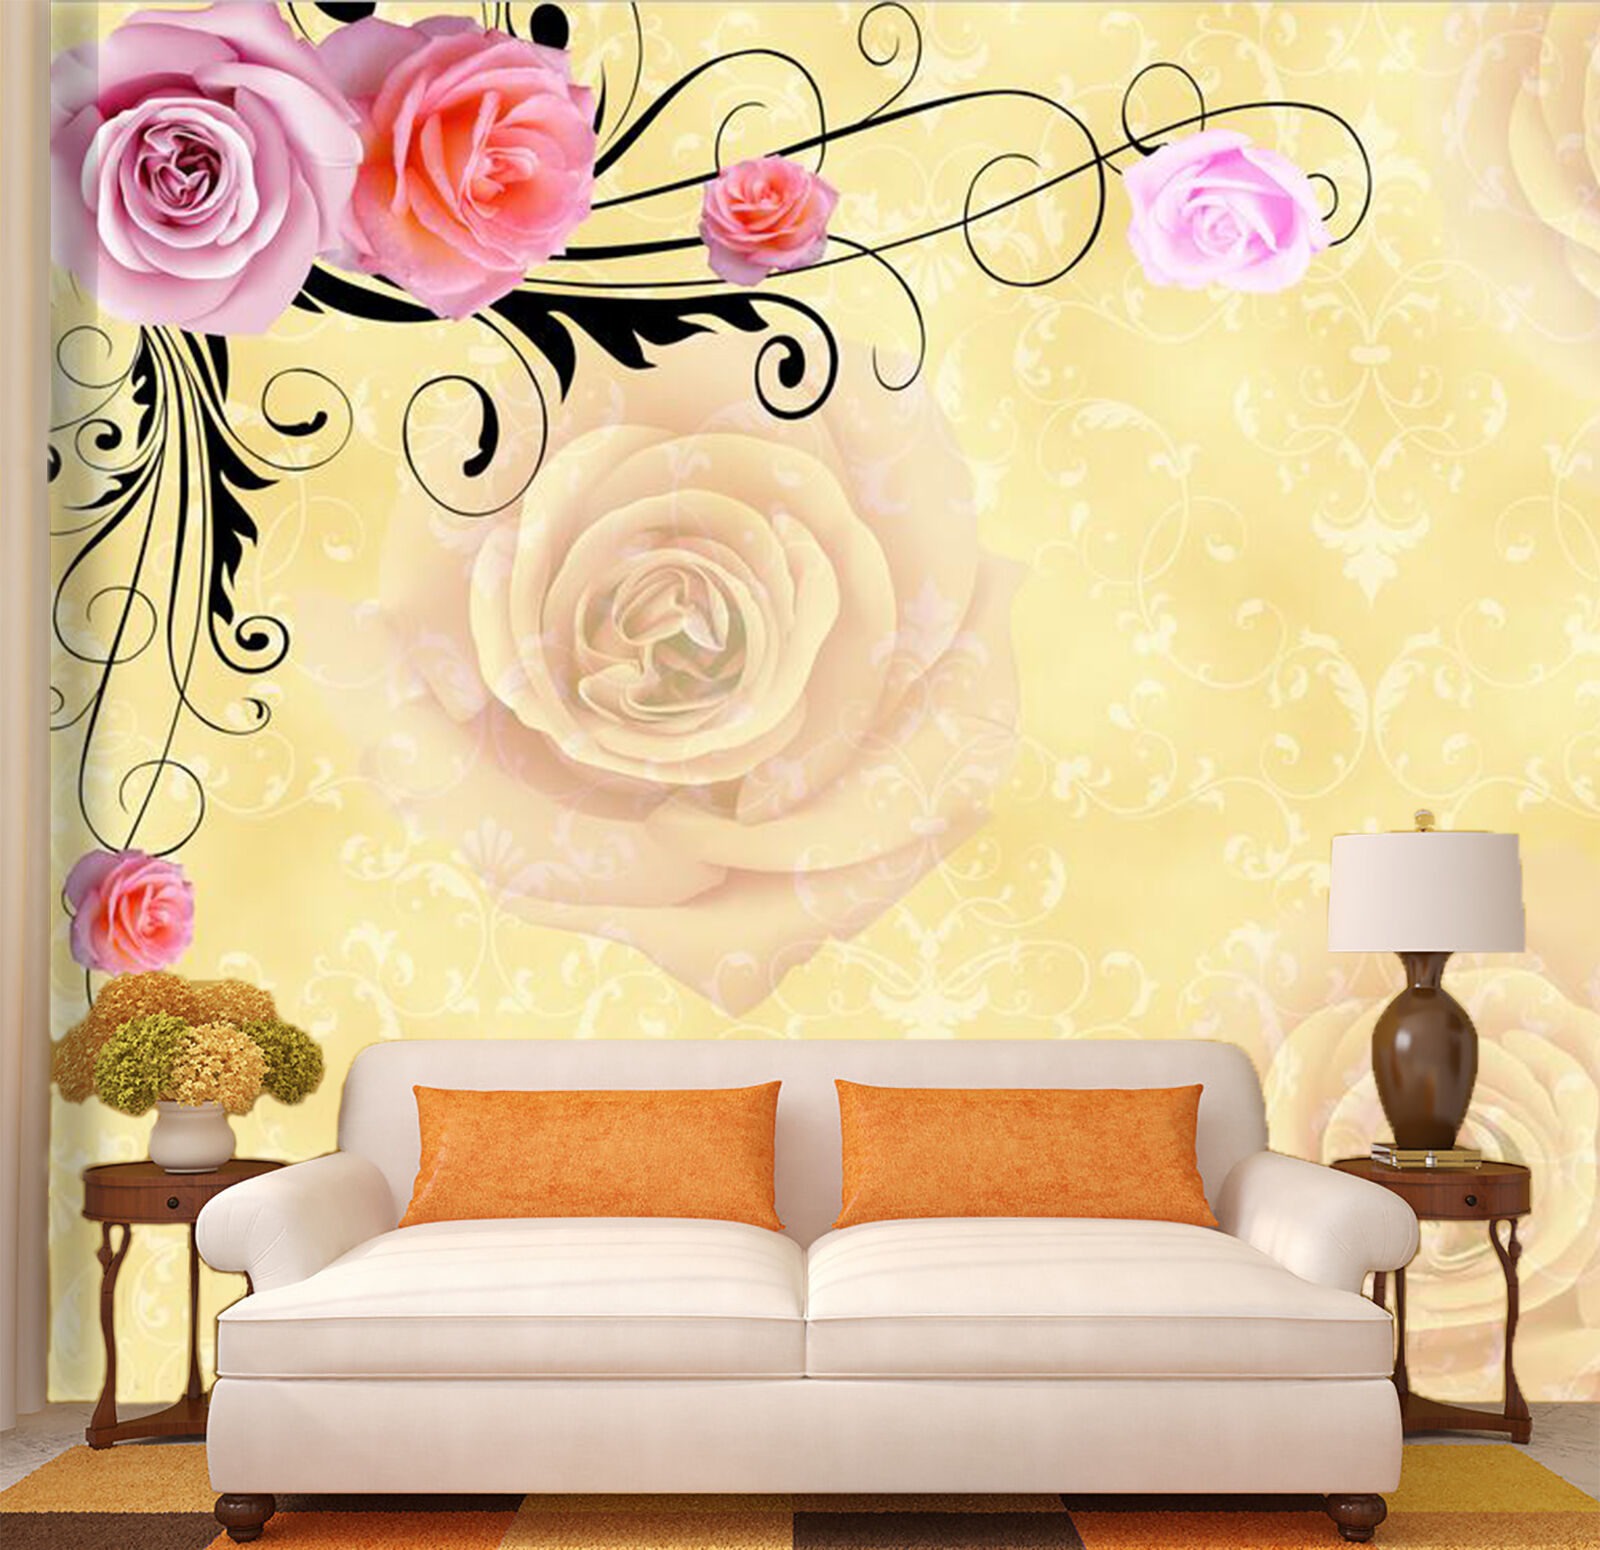 3D Flowers & Printings 2444 Paper Wall Print Wall Decal Wall Deco Indoor Murals